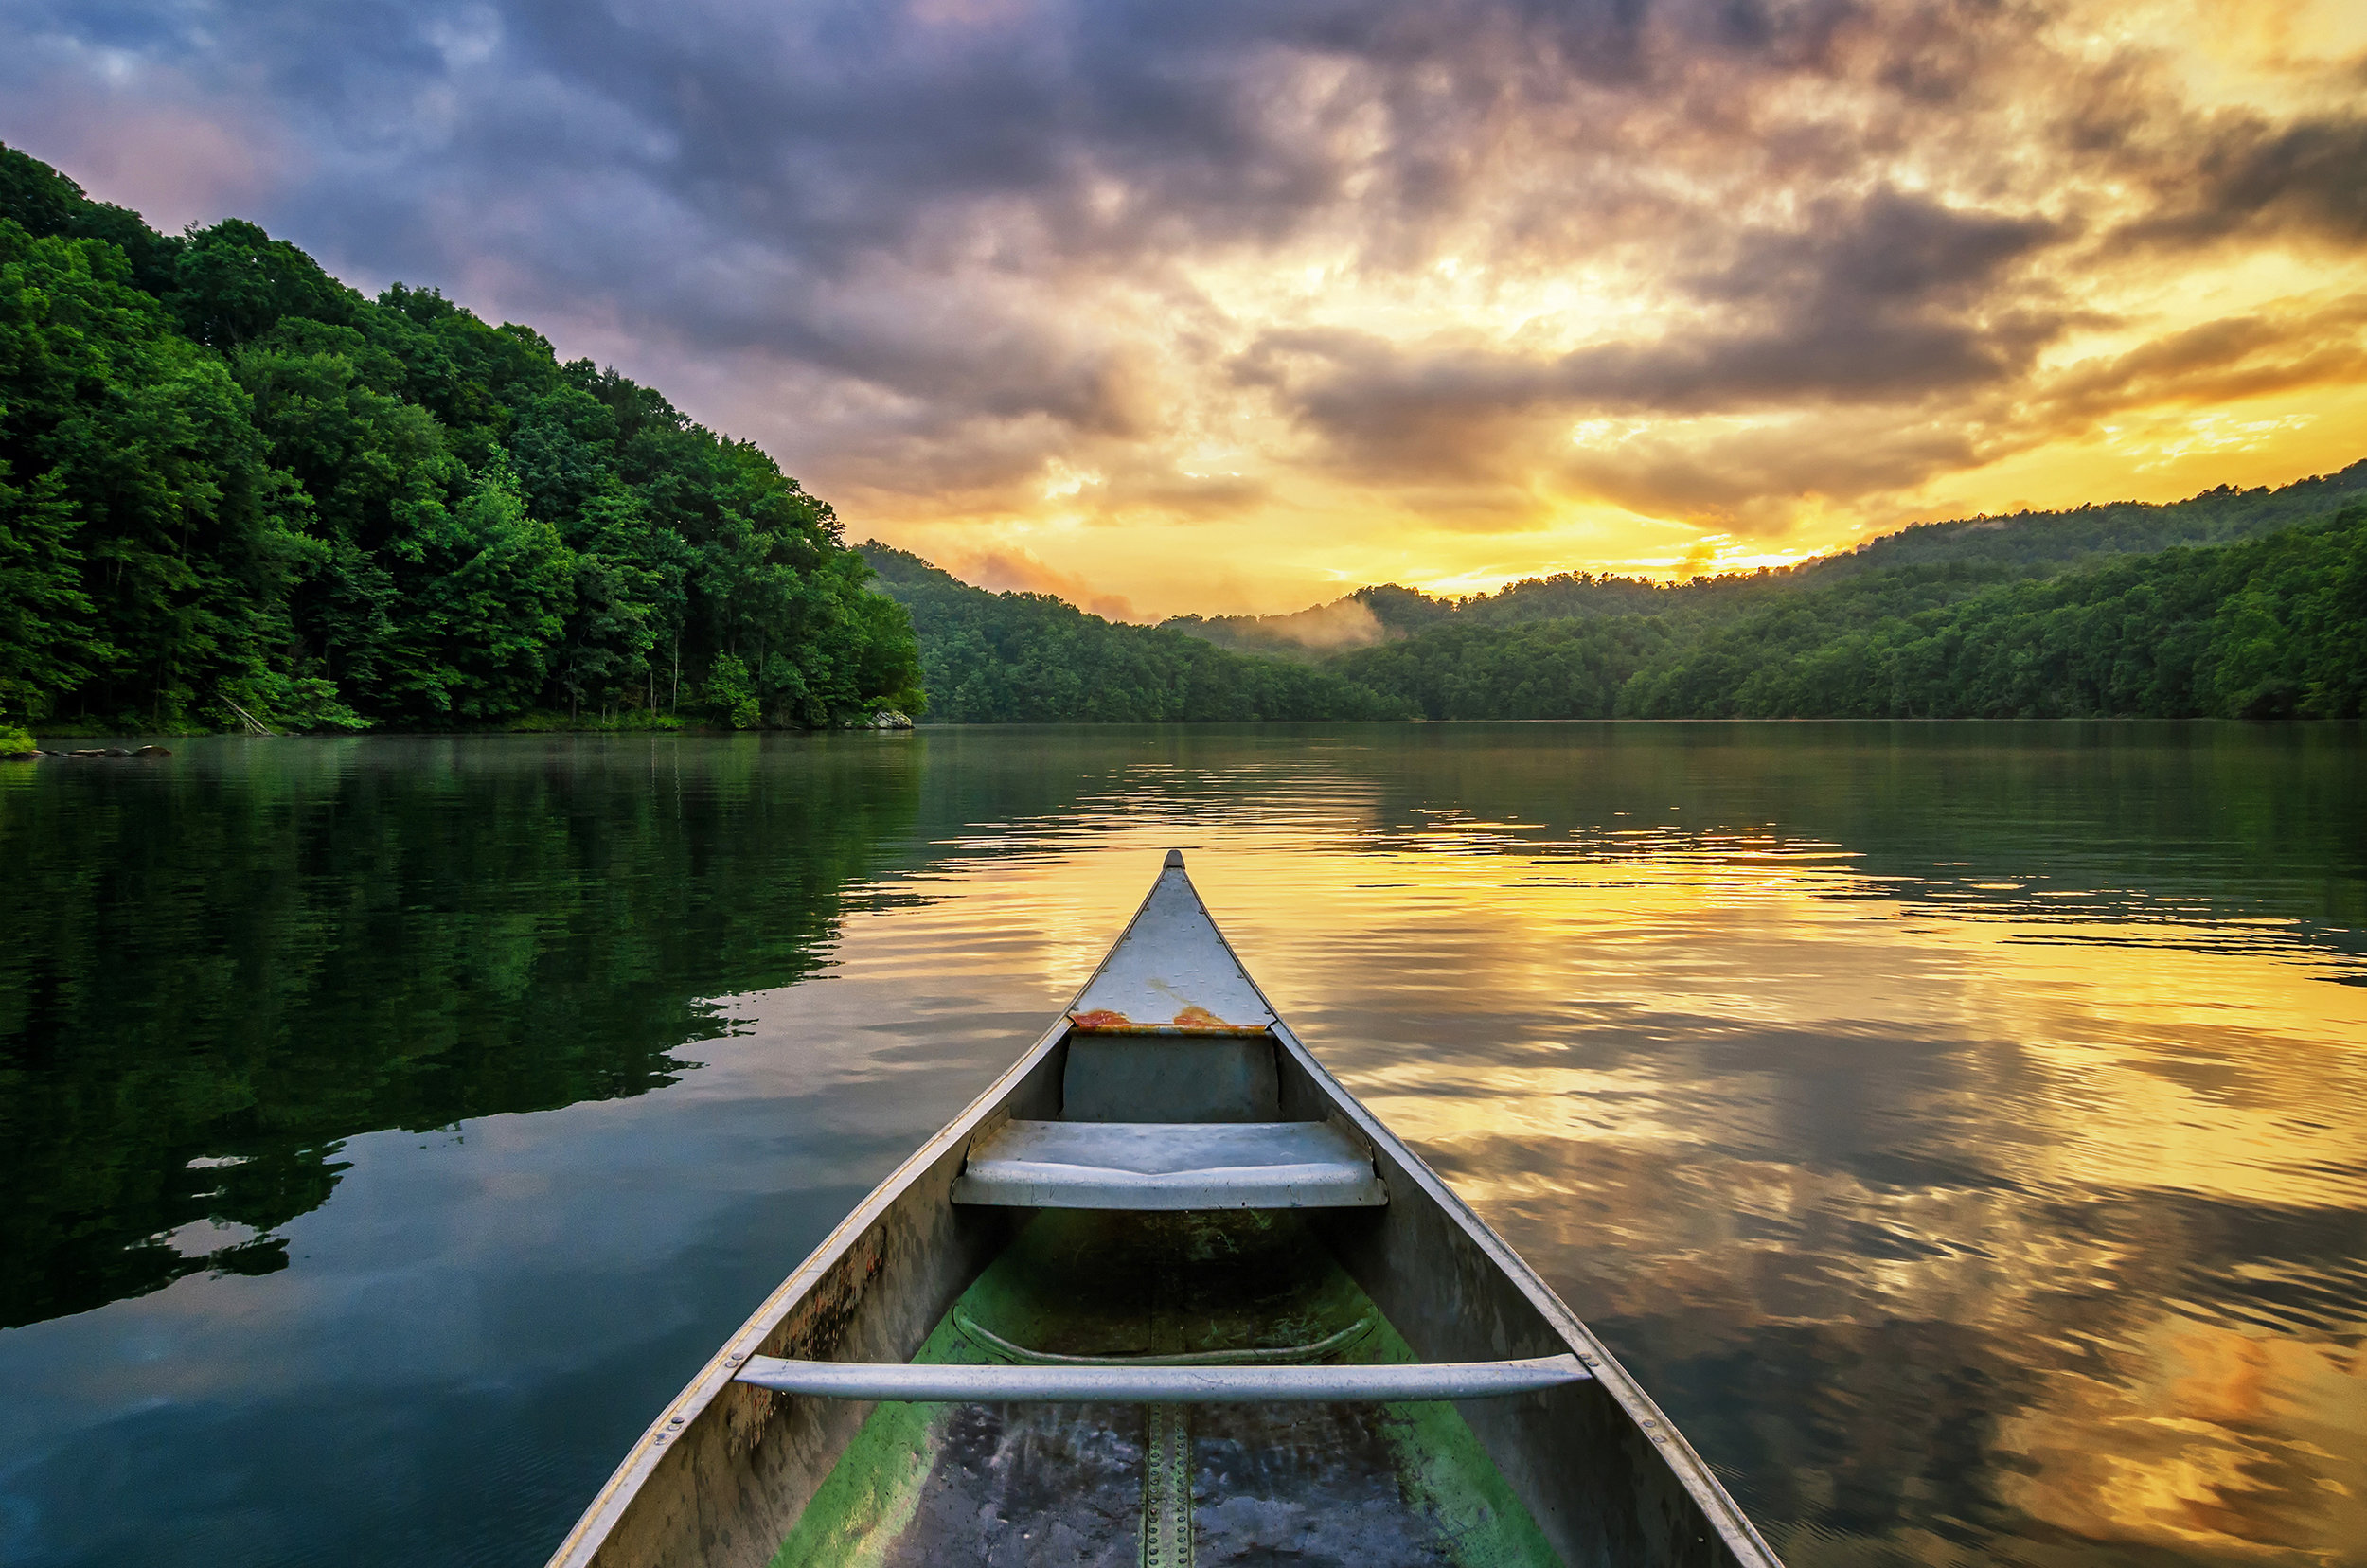 A dramatic sunset from an old canoe on a clam mountain lake in the Appalachian Mountains of Kentucky.jpg